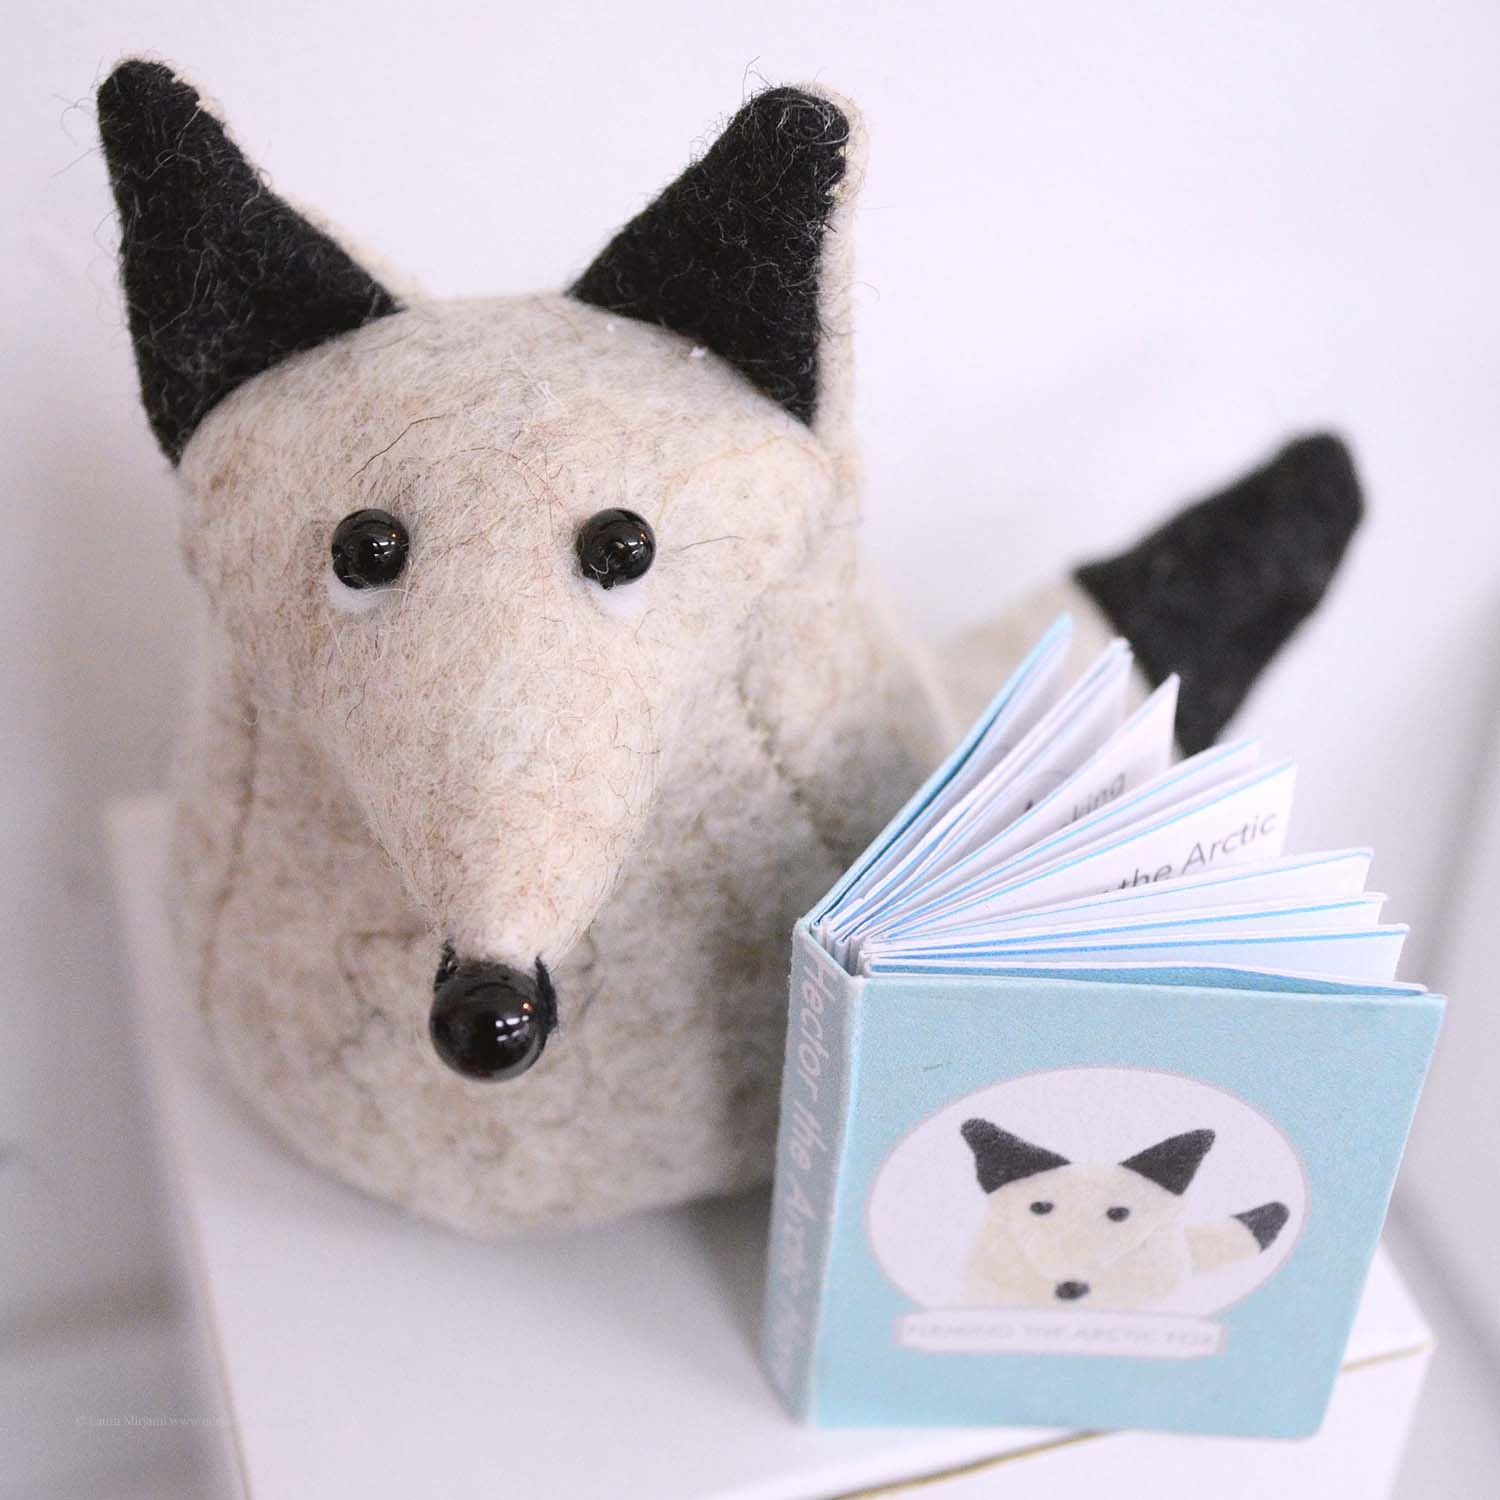 Bilberry Woods storybook character Hector the Arctic Hare by Laura Mirjami | Mirjami Design